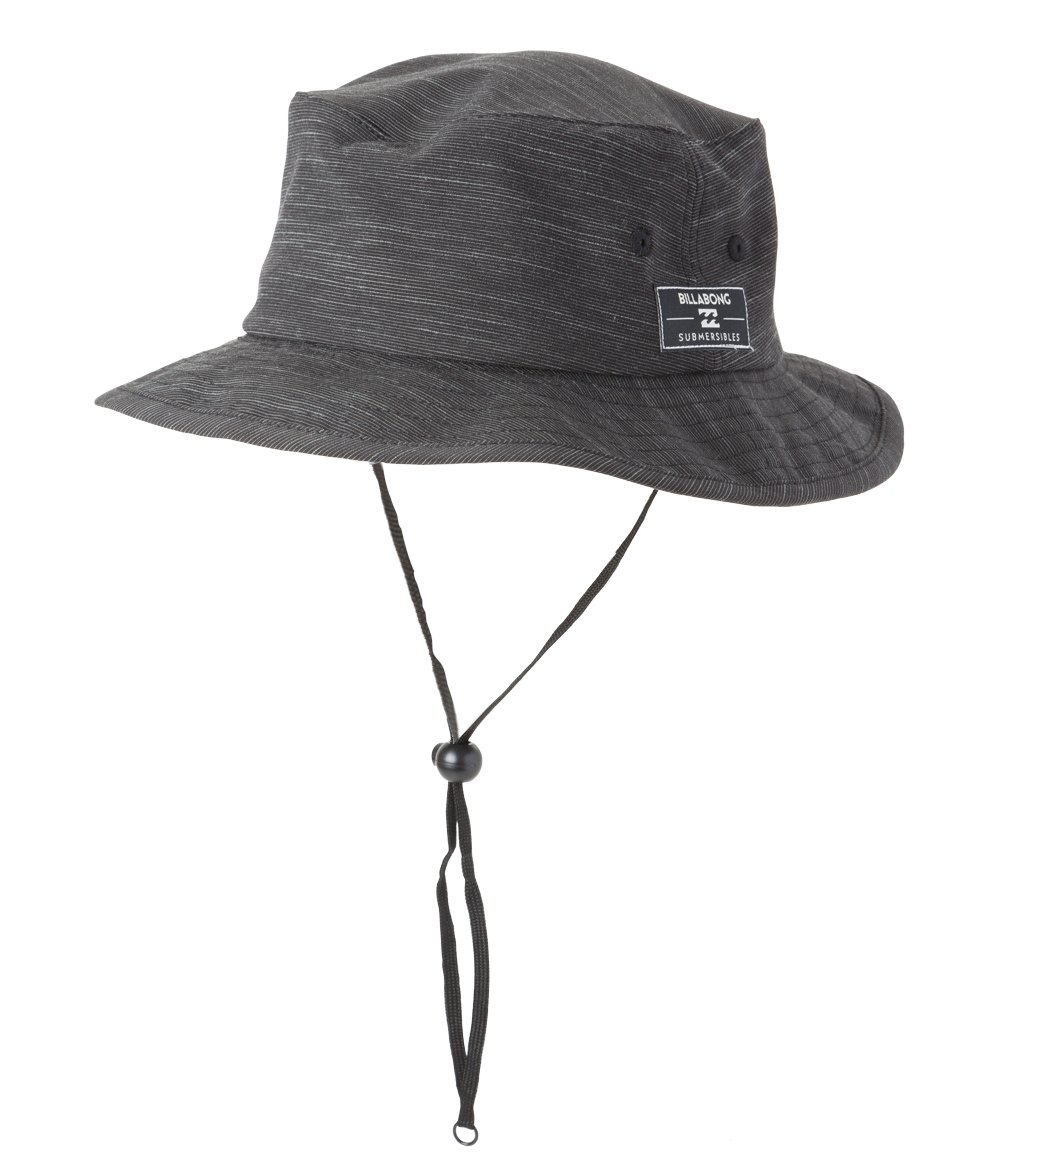 Billabong Men s Submersible Bucket Hat at SwimOutlet.com 334cd8d33508